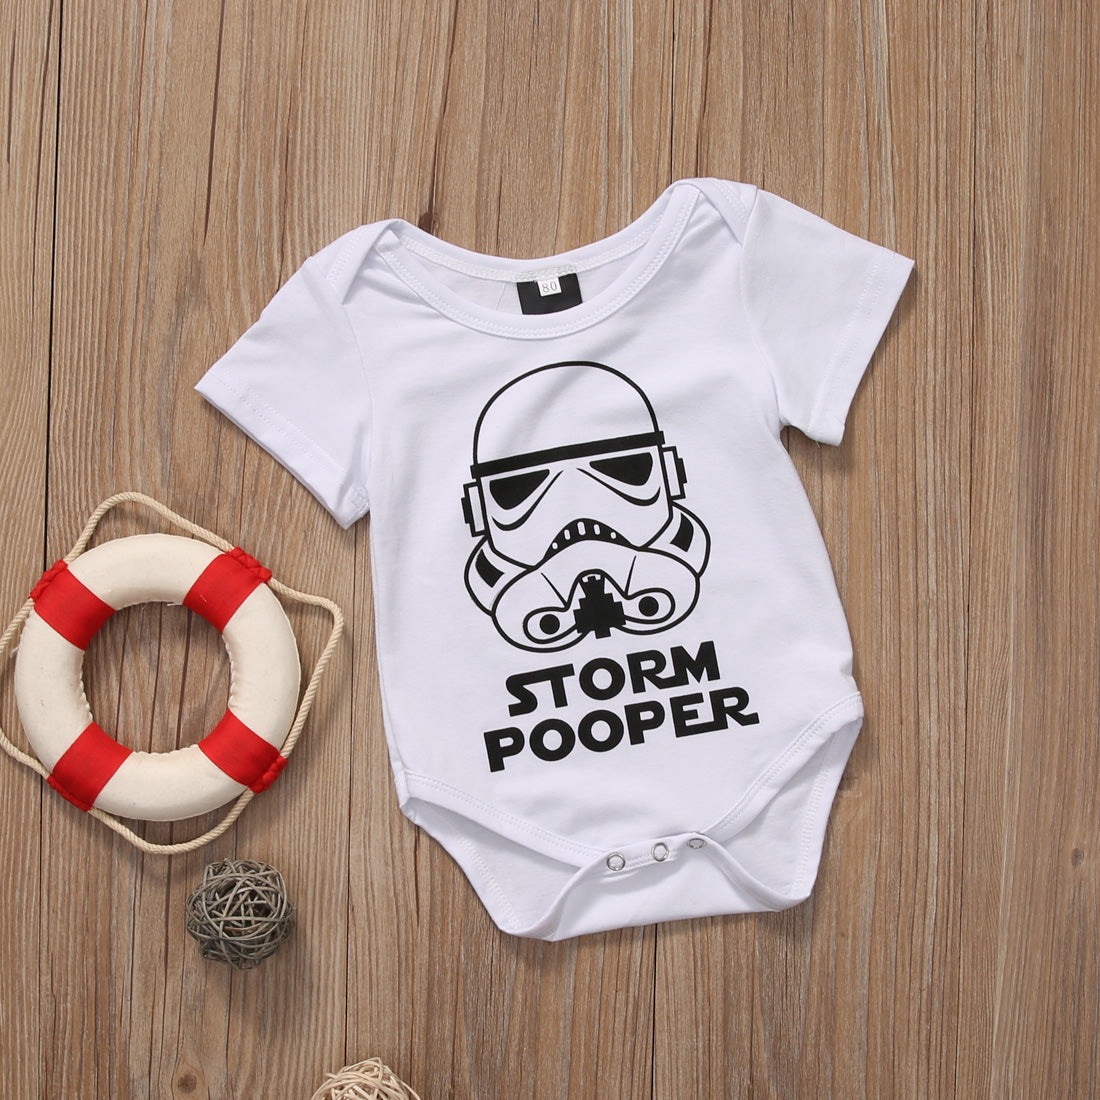 Toddler Infant Kids Newborn Baby Girls Boys Storm Pooper Romper Jumpsuit Short Sleeve Sunsuit baby pajamas jumpsuit baby girl - Your Baby's Closet